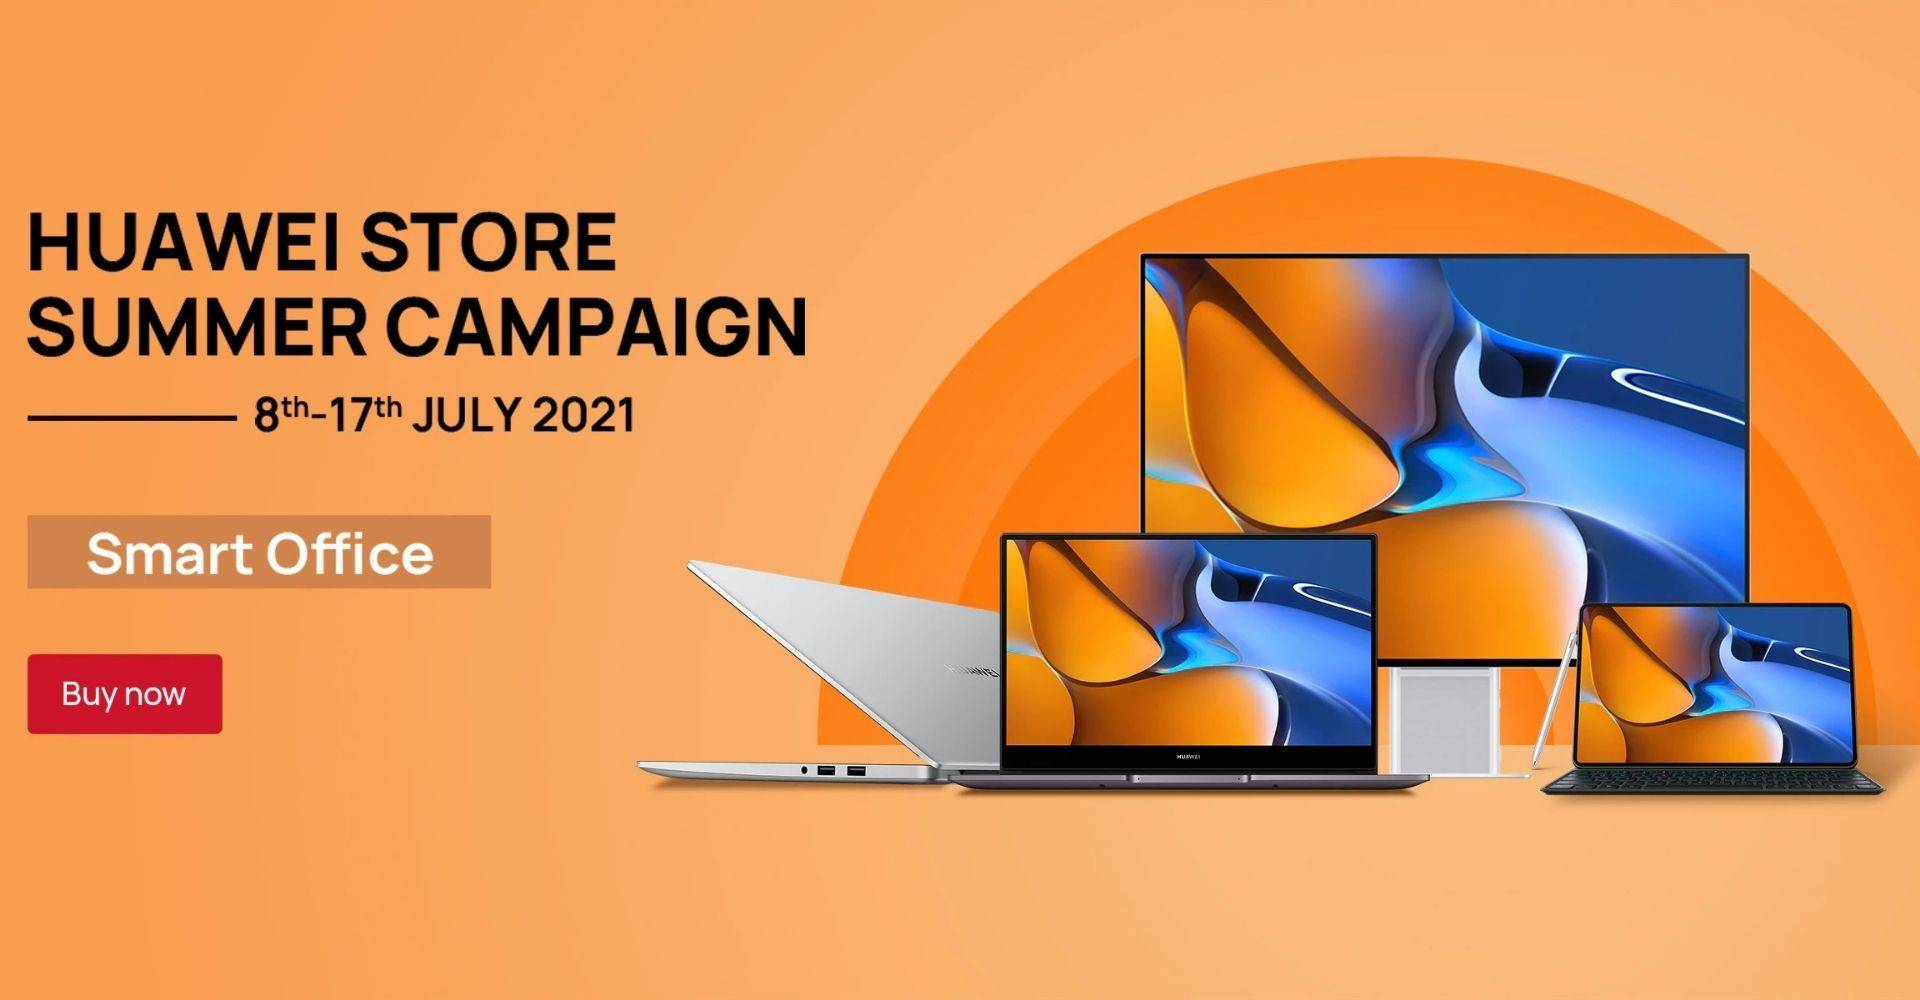 Huawei Store Summer Campaign